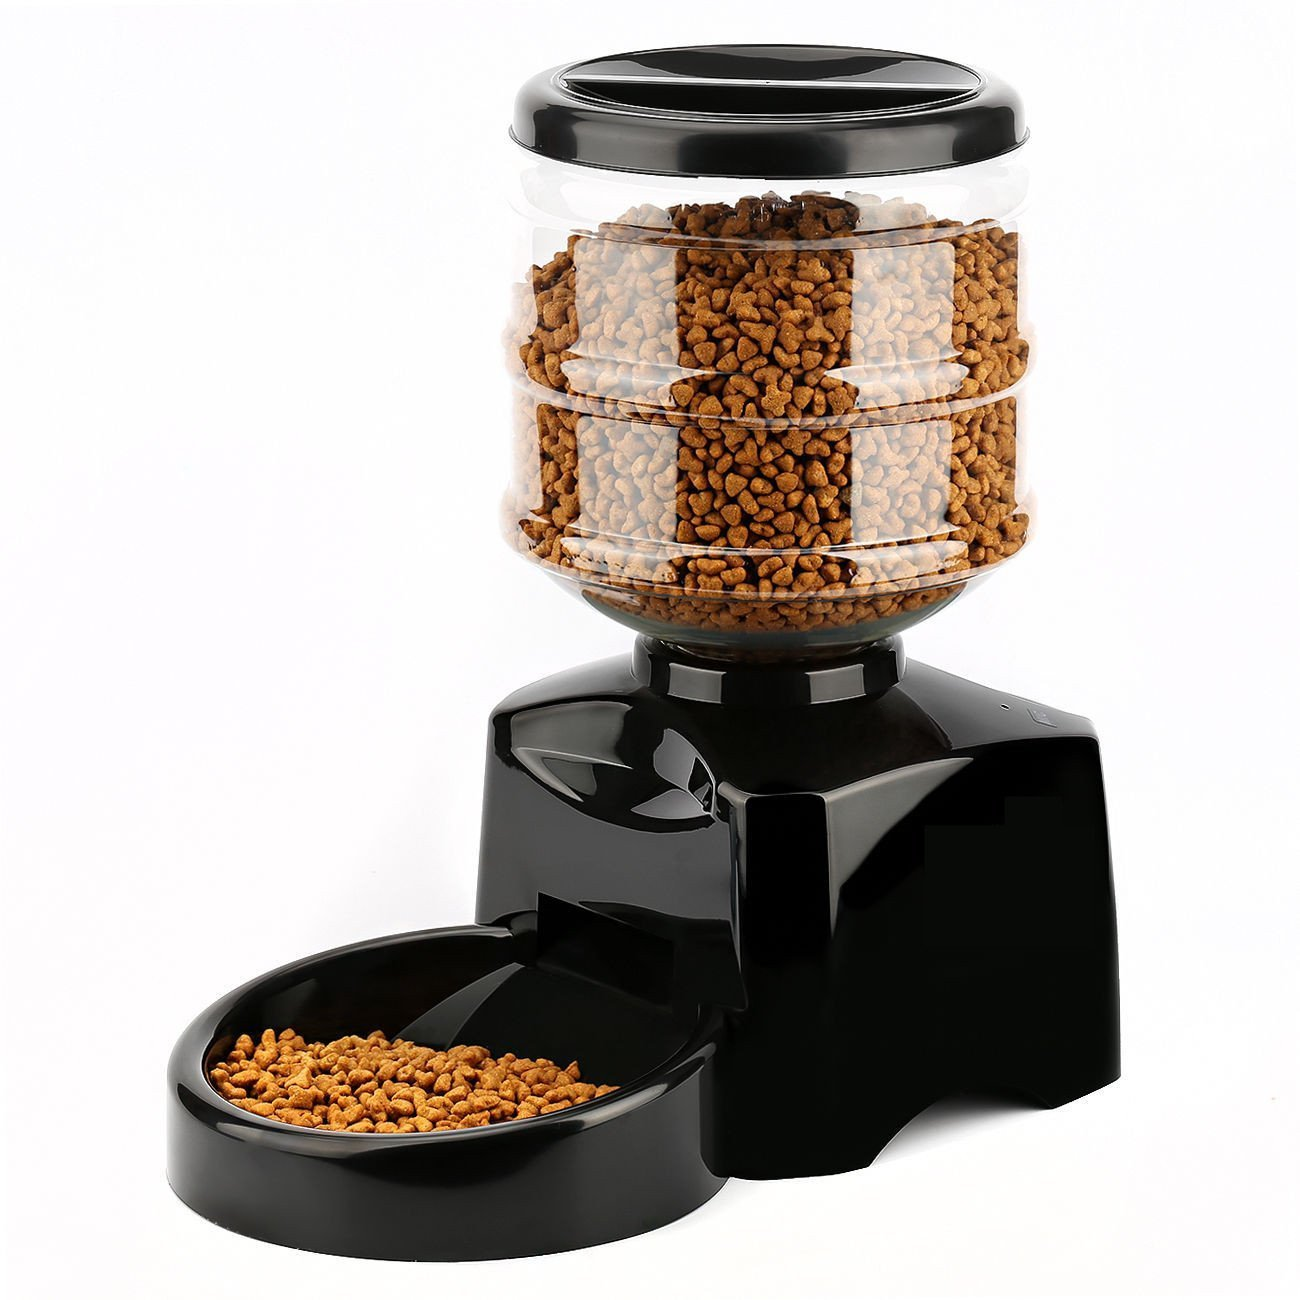 PYRUS Automatic Feeder Electric Pet Dry Food Container with LCD Display Large